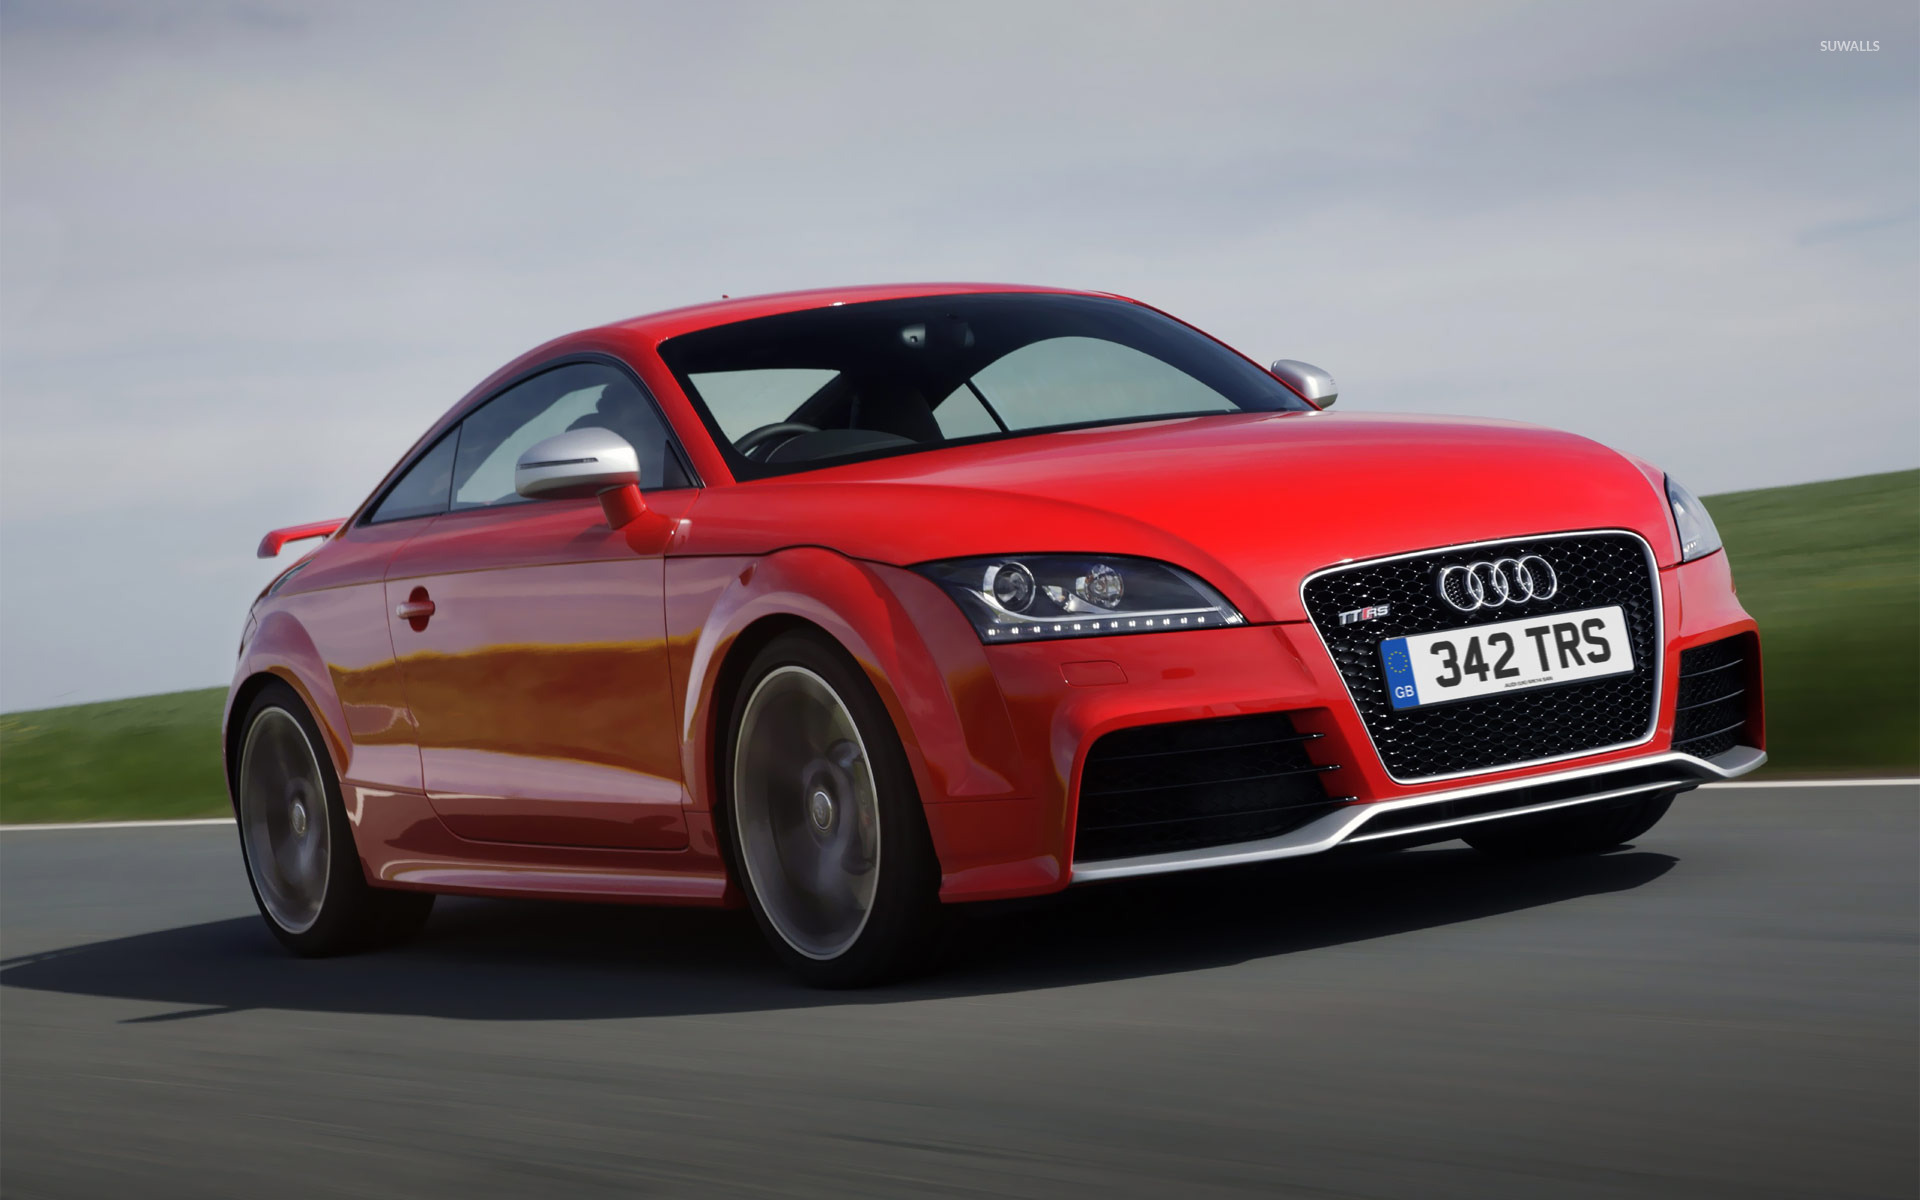 Audi TT RS Coupe [2] wallpaper - Car wallpapers - #19111